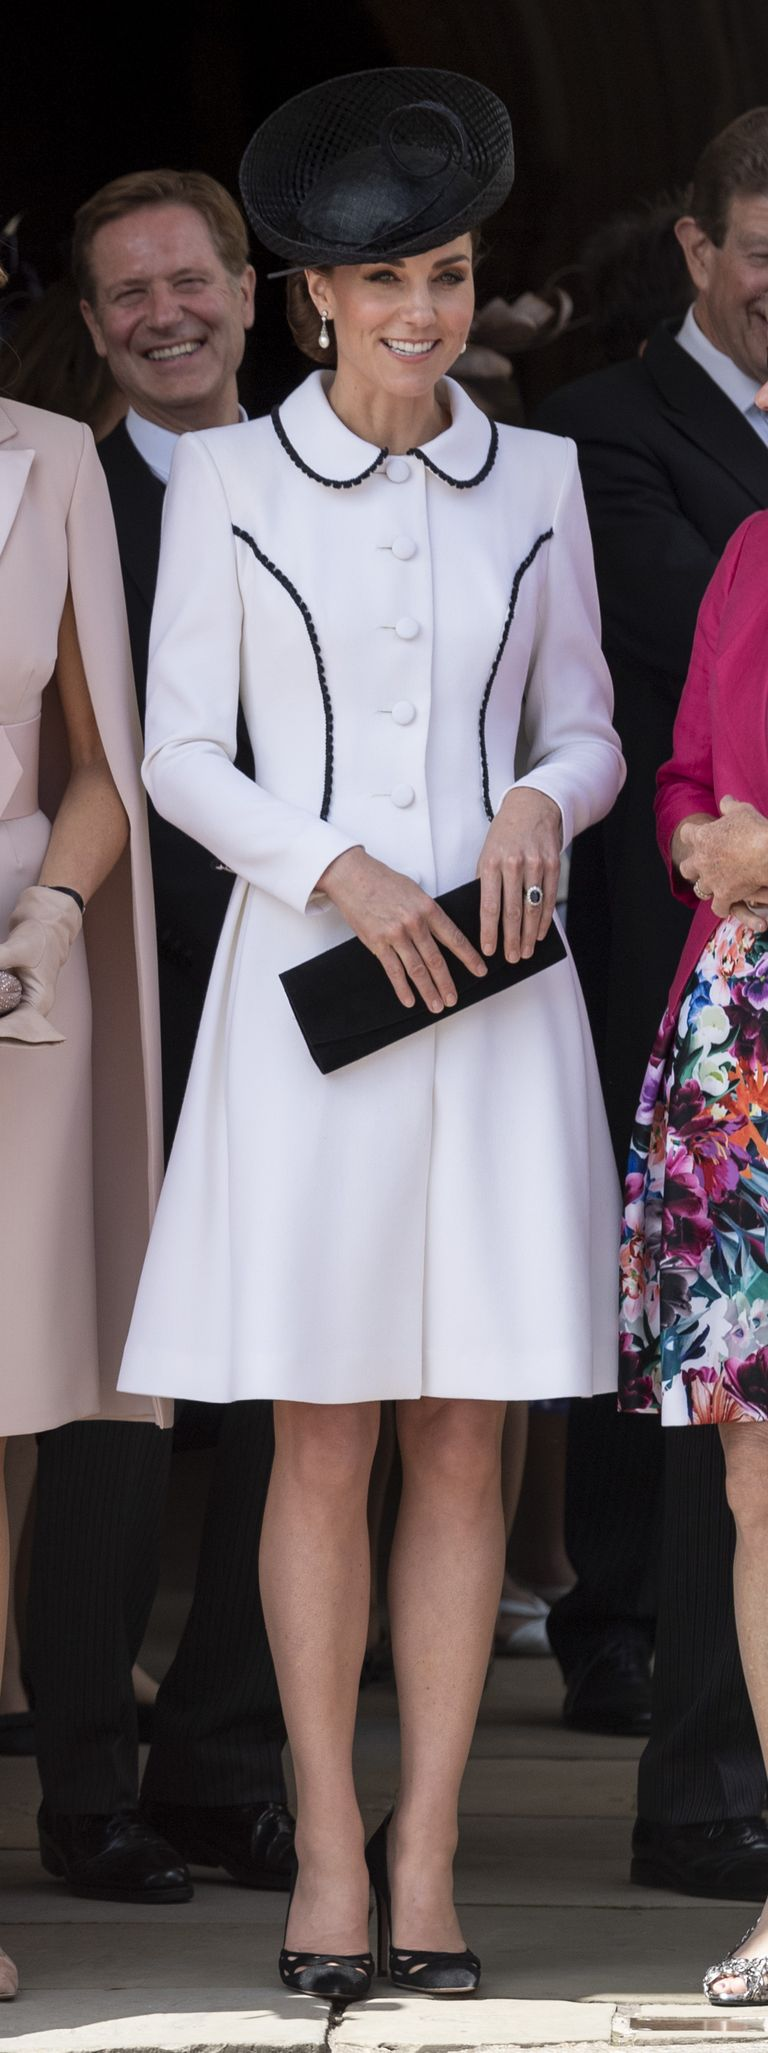 Kate attended the Order of the Garter ceremony wearing a white collared Catherine Walker coat dress with black piping, a black hat, pearl earrings, and black pumps. The Duchess was joined by the Queen, Prince William, Prince Charles, and other members of the royal family for the service.